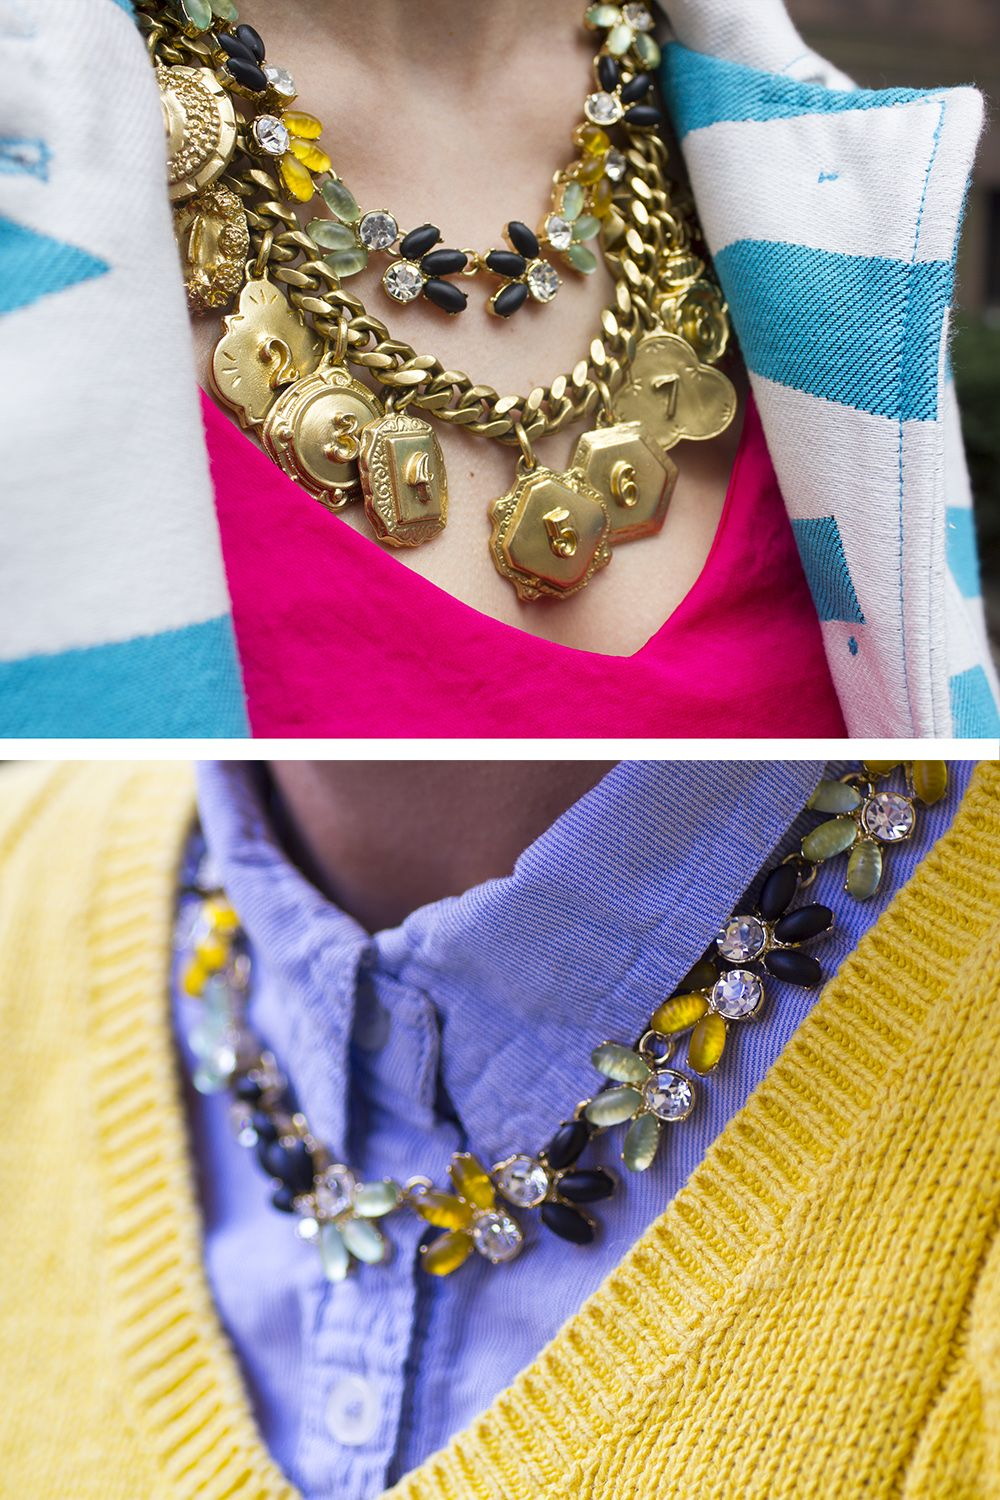 http://lulufrost.tumblr.com/post/80683664446/lulu-style-1-girl-1-necklace-5-days-more